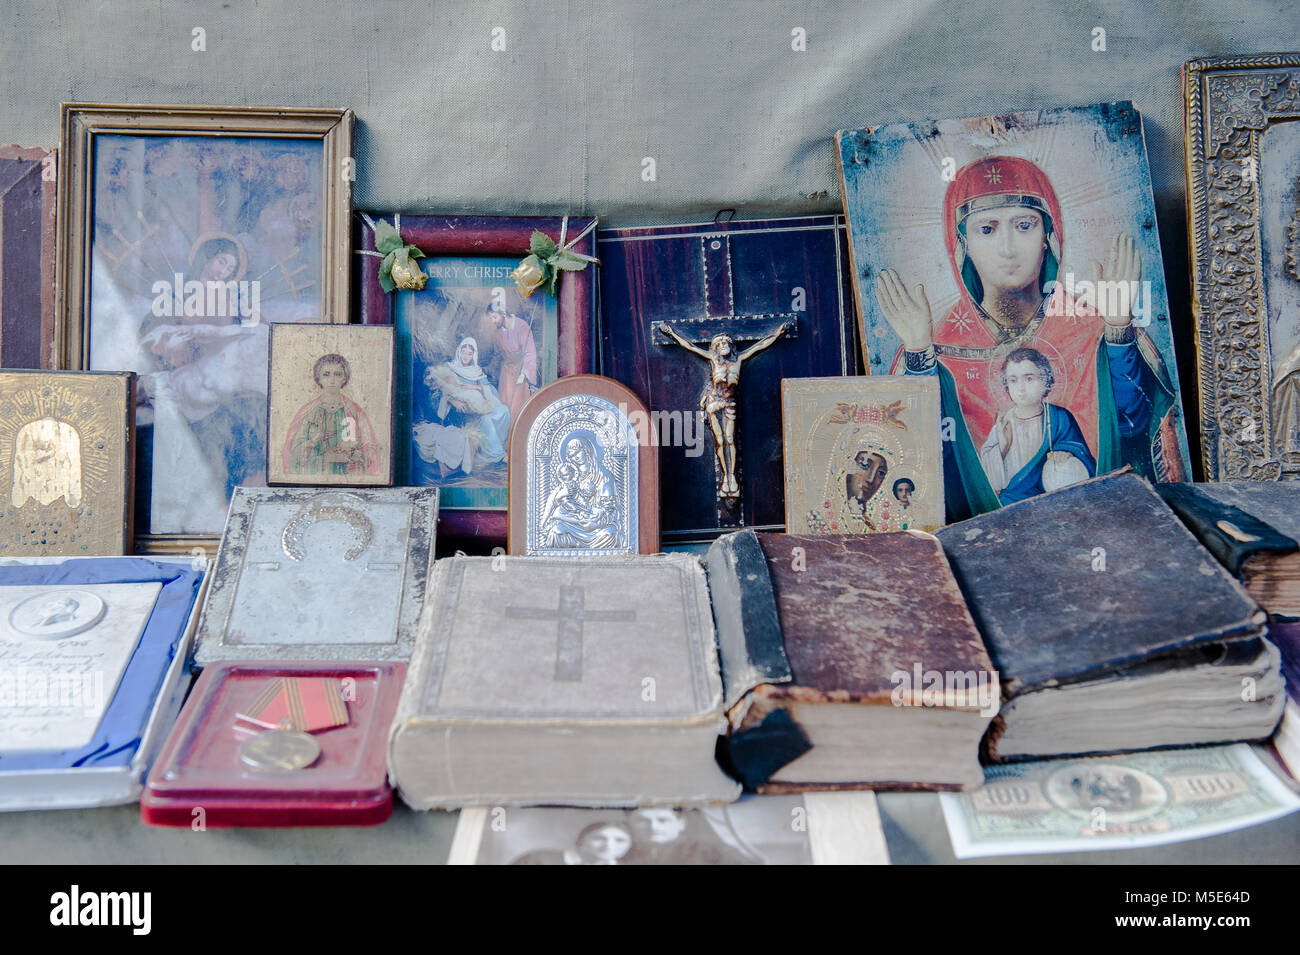 Holy relicts for sale at the Yerevan flea market, Armenia. - Stock Image